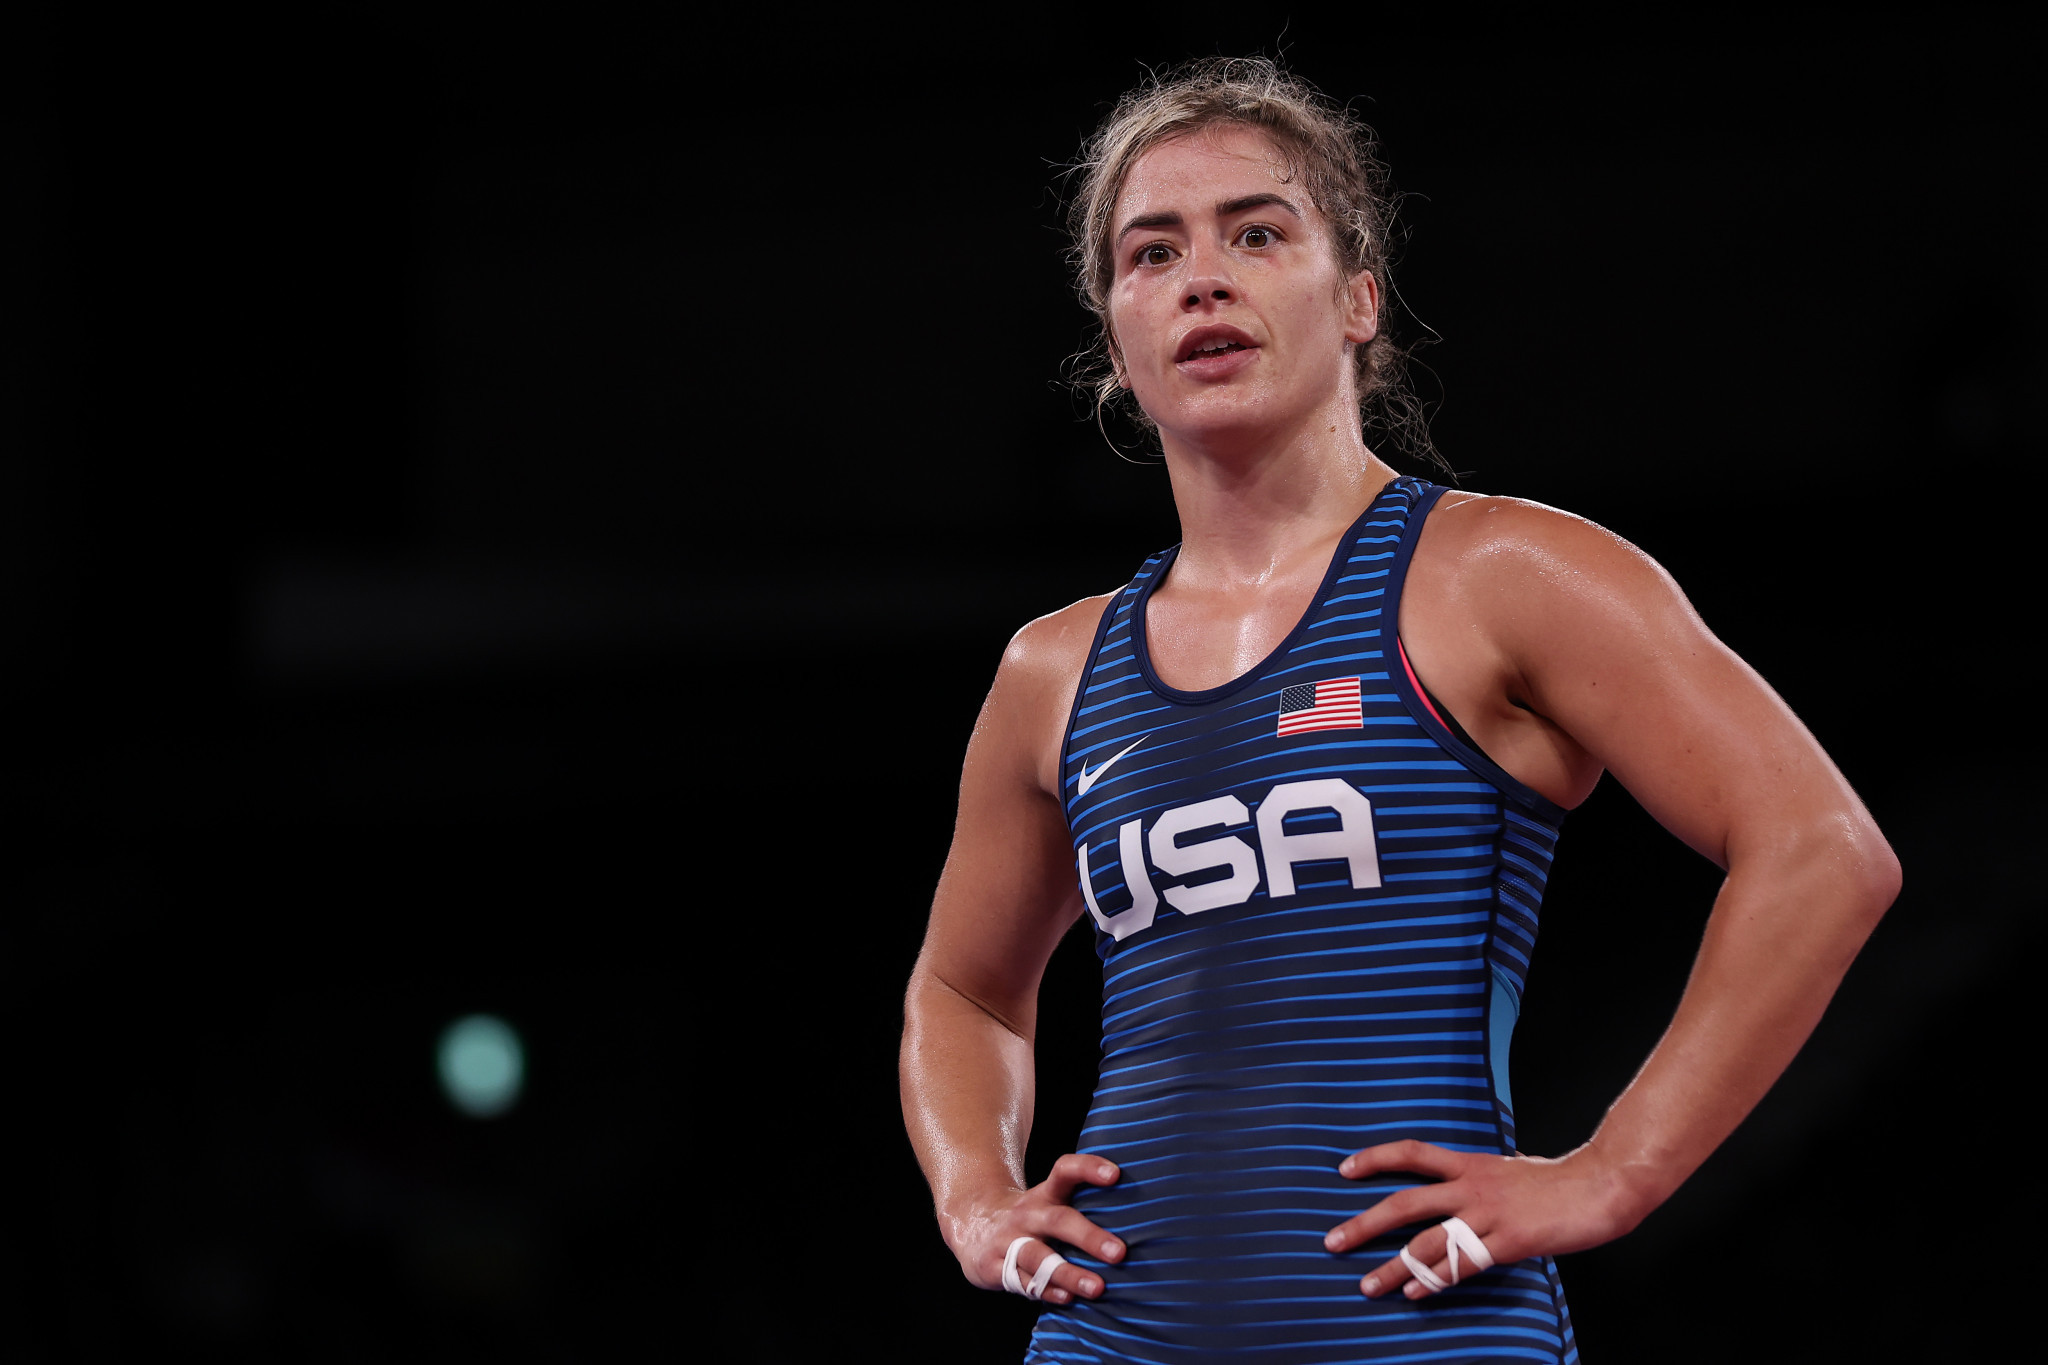 Helen Louise Maroulis wins third title at Wrestling World Championships in Oslo